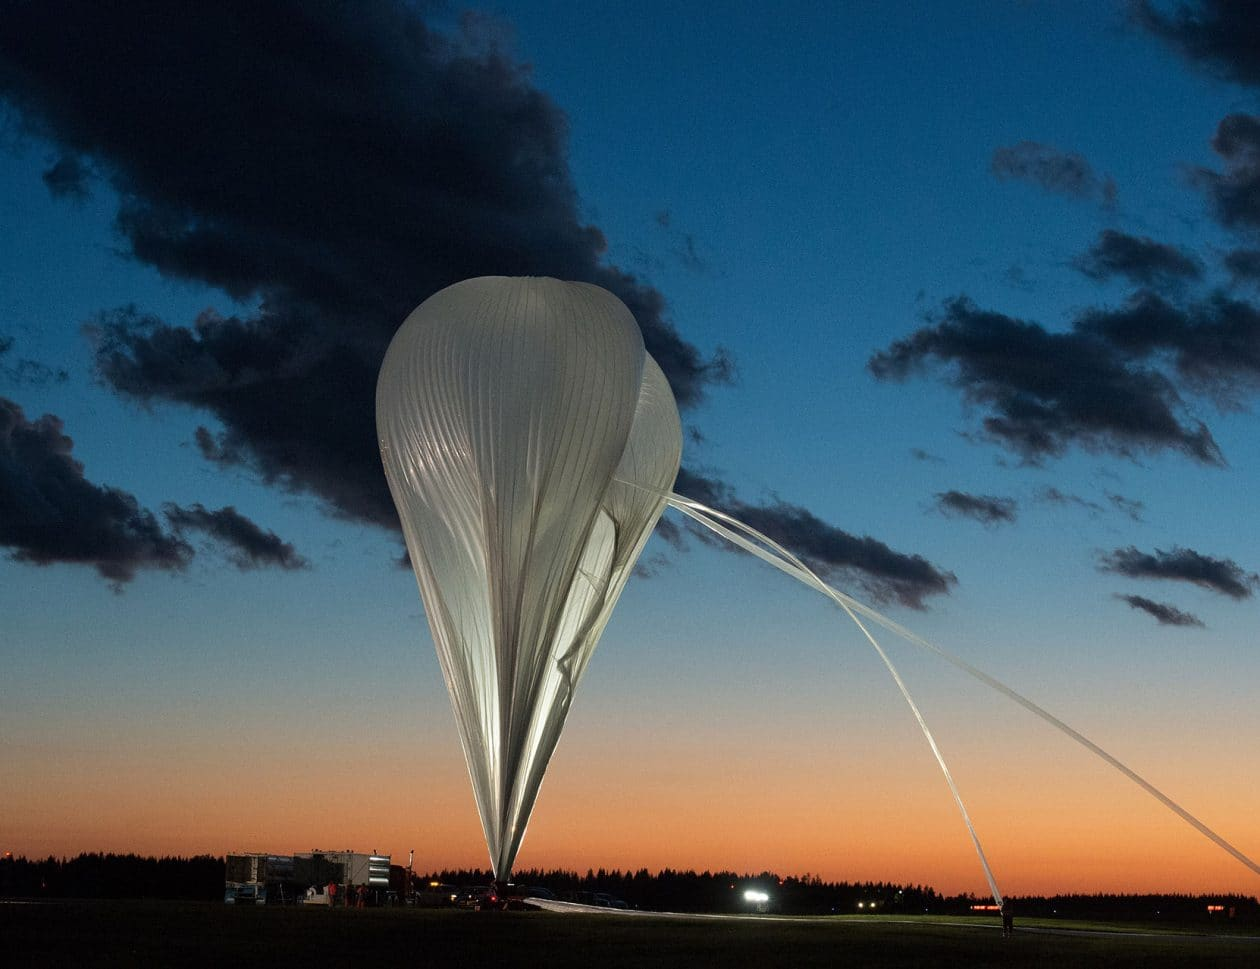 RKW Gruppe - RKW CNES balloon 2019